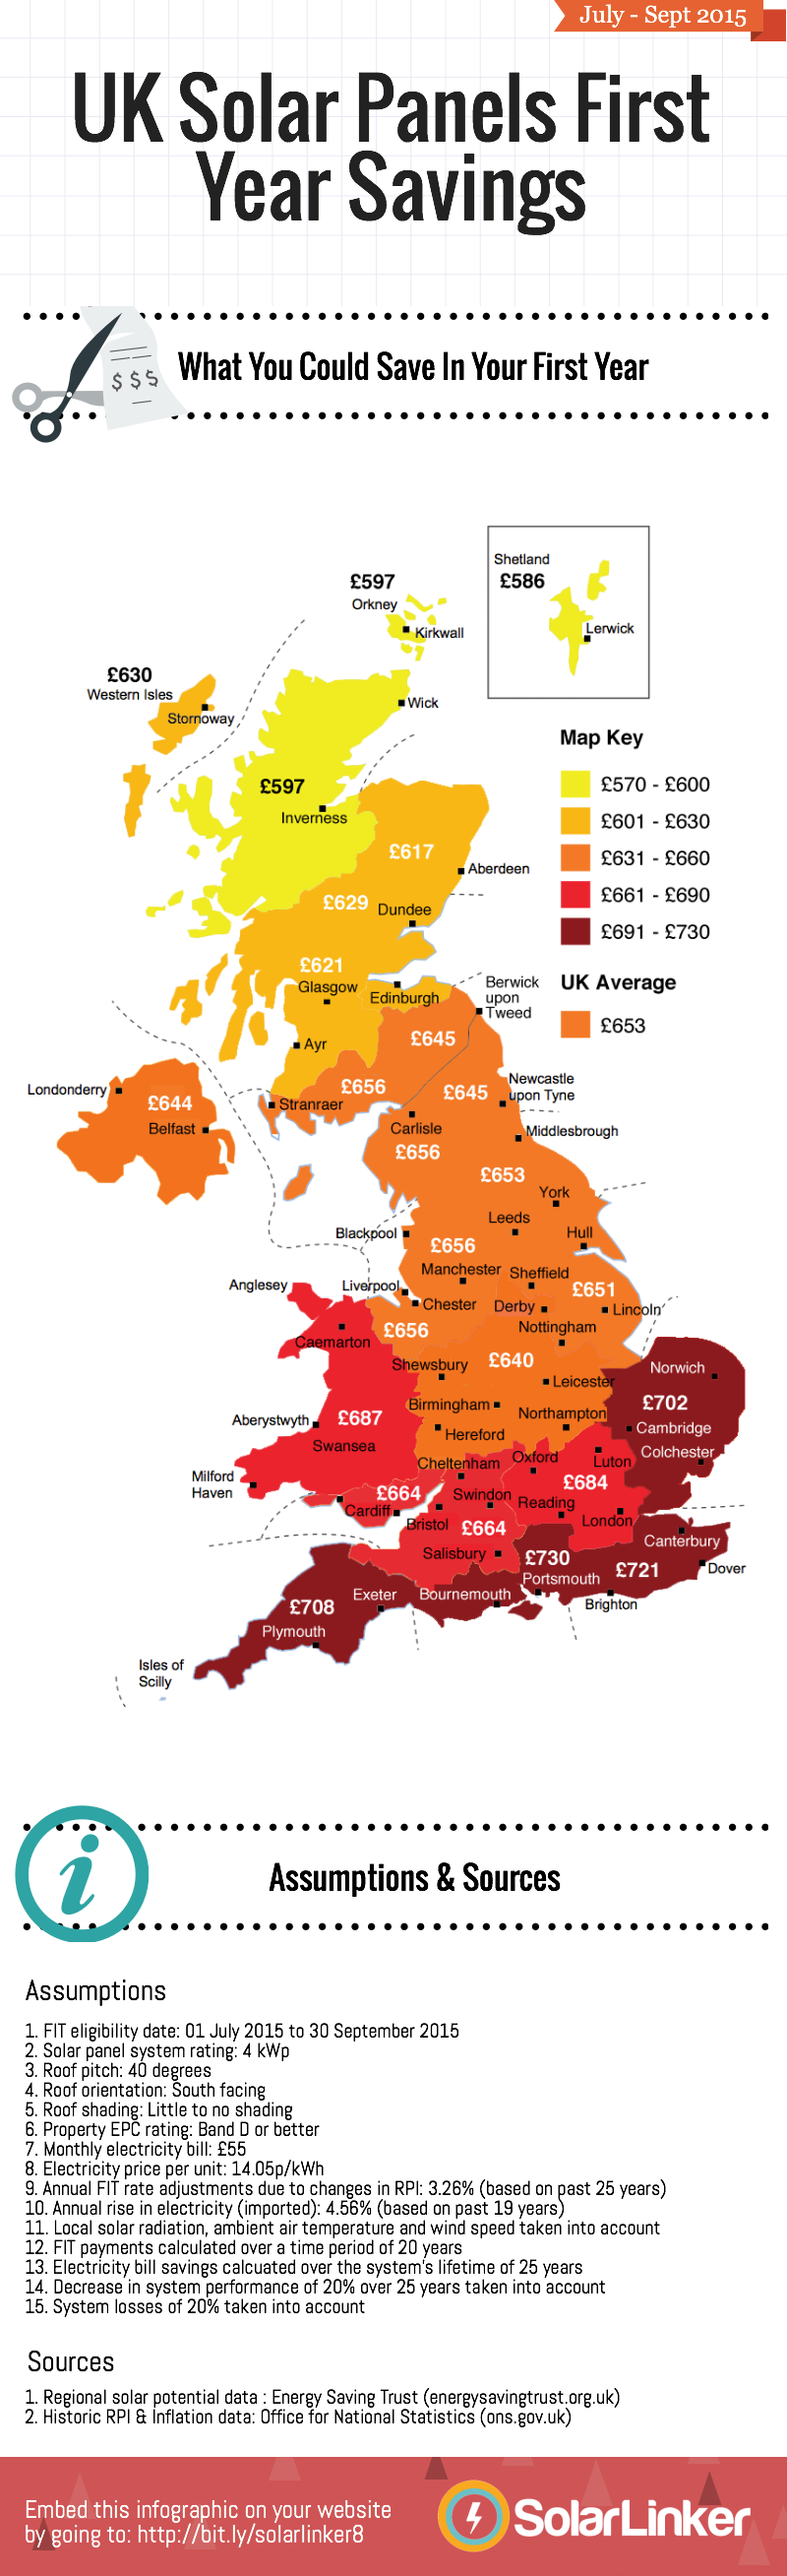 """How Much Money Can Solar Panels Save You Annually in the UK?"""" title=""""How Much Money Can Solar Panels Save You Annually in the UK?"""